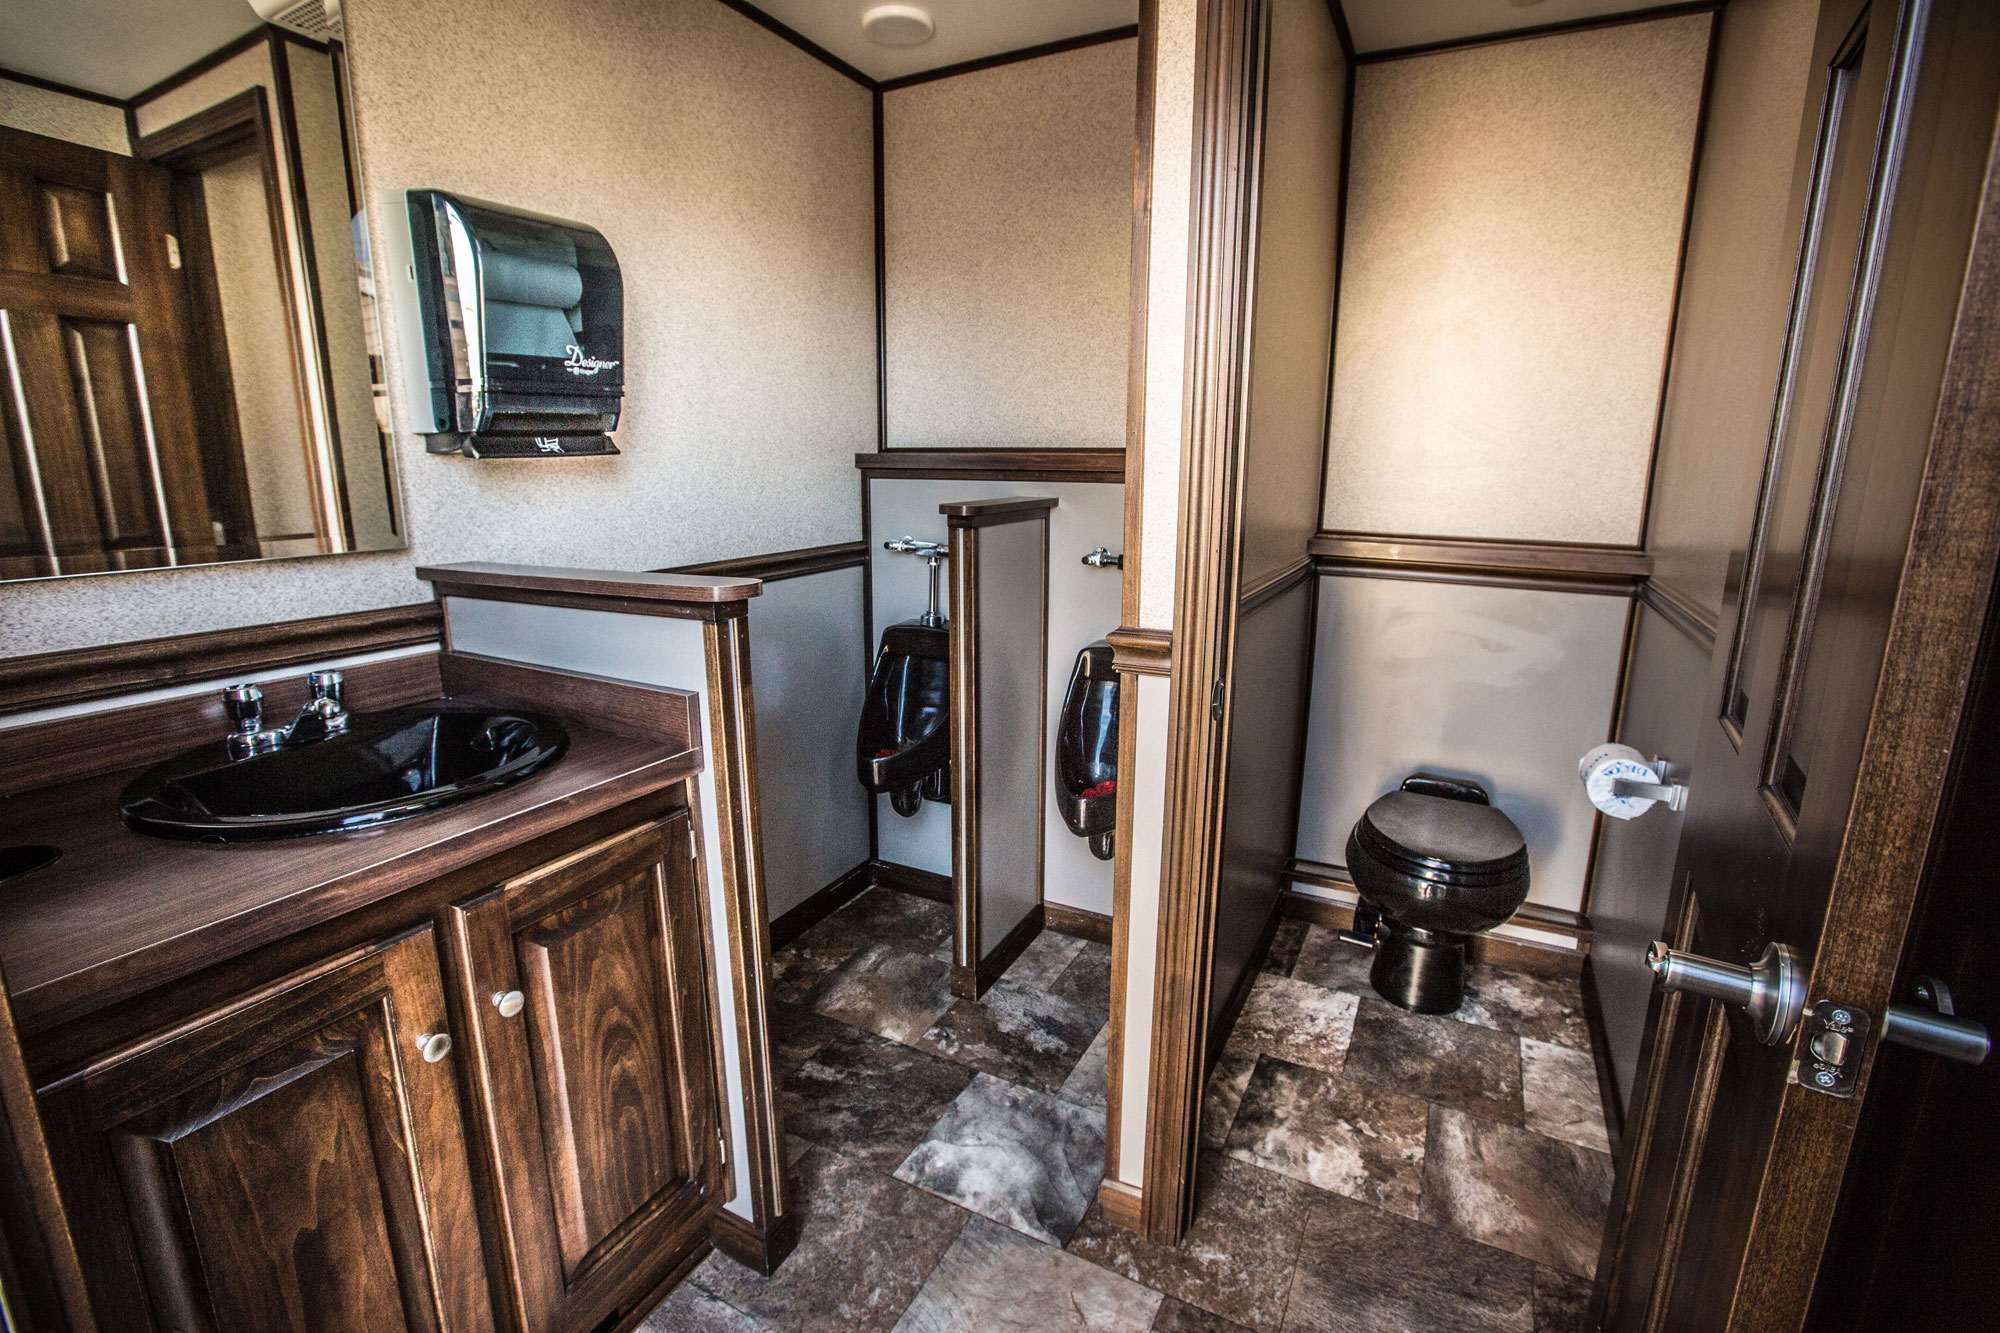 Interior of the Elegance 300 portable washroom for special events